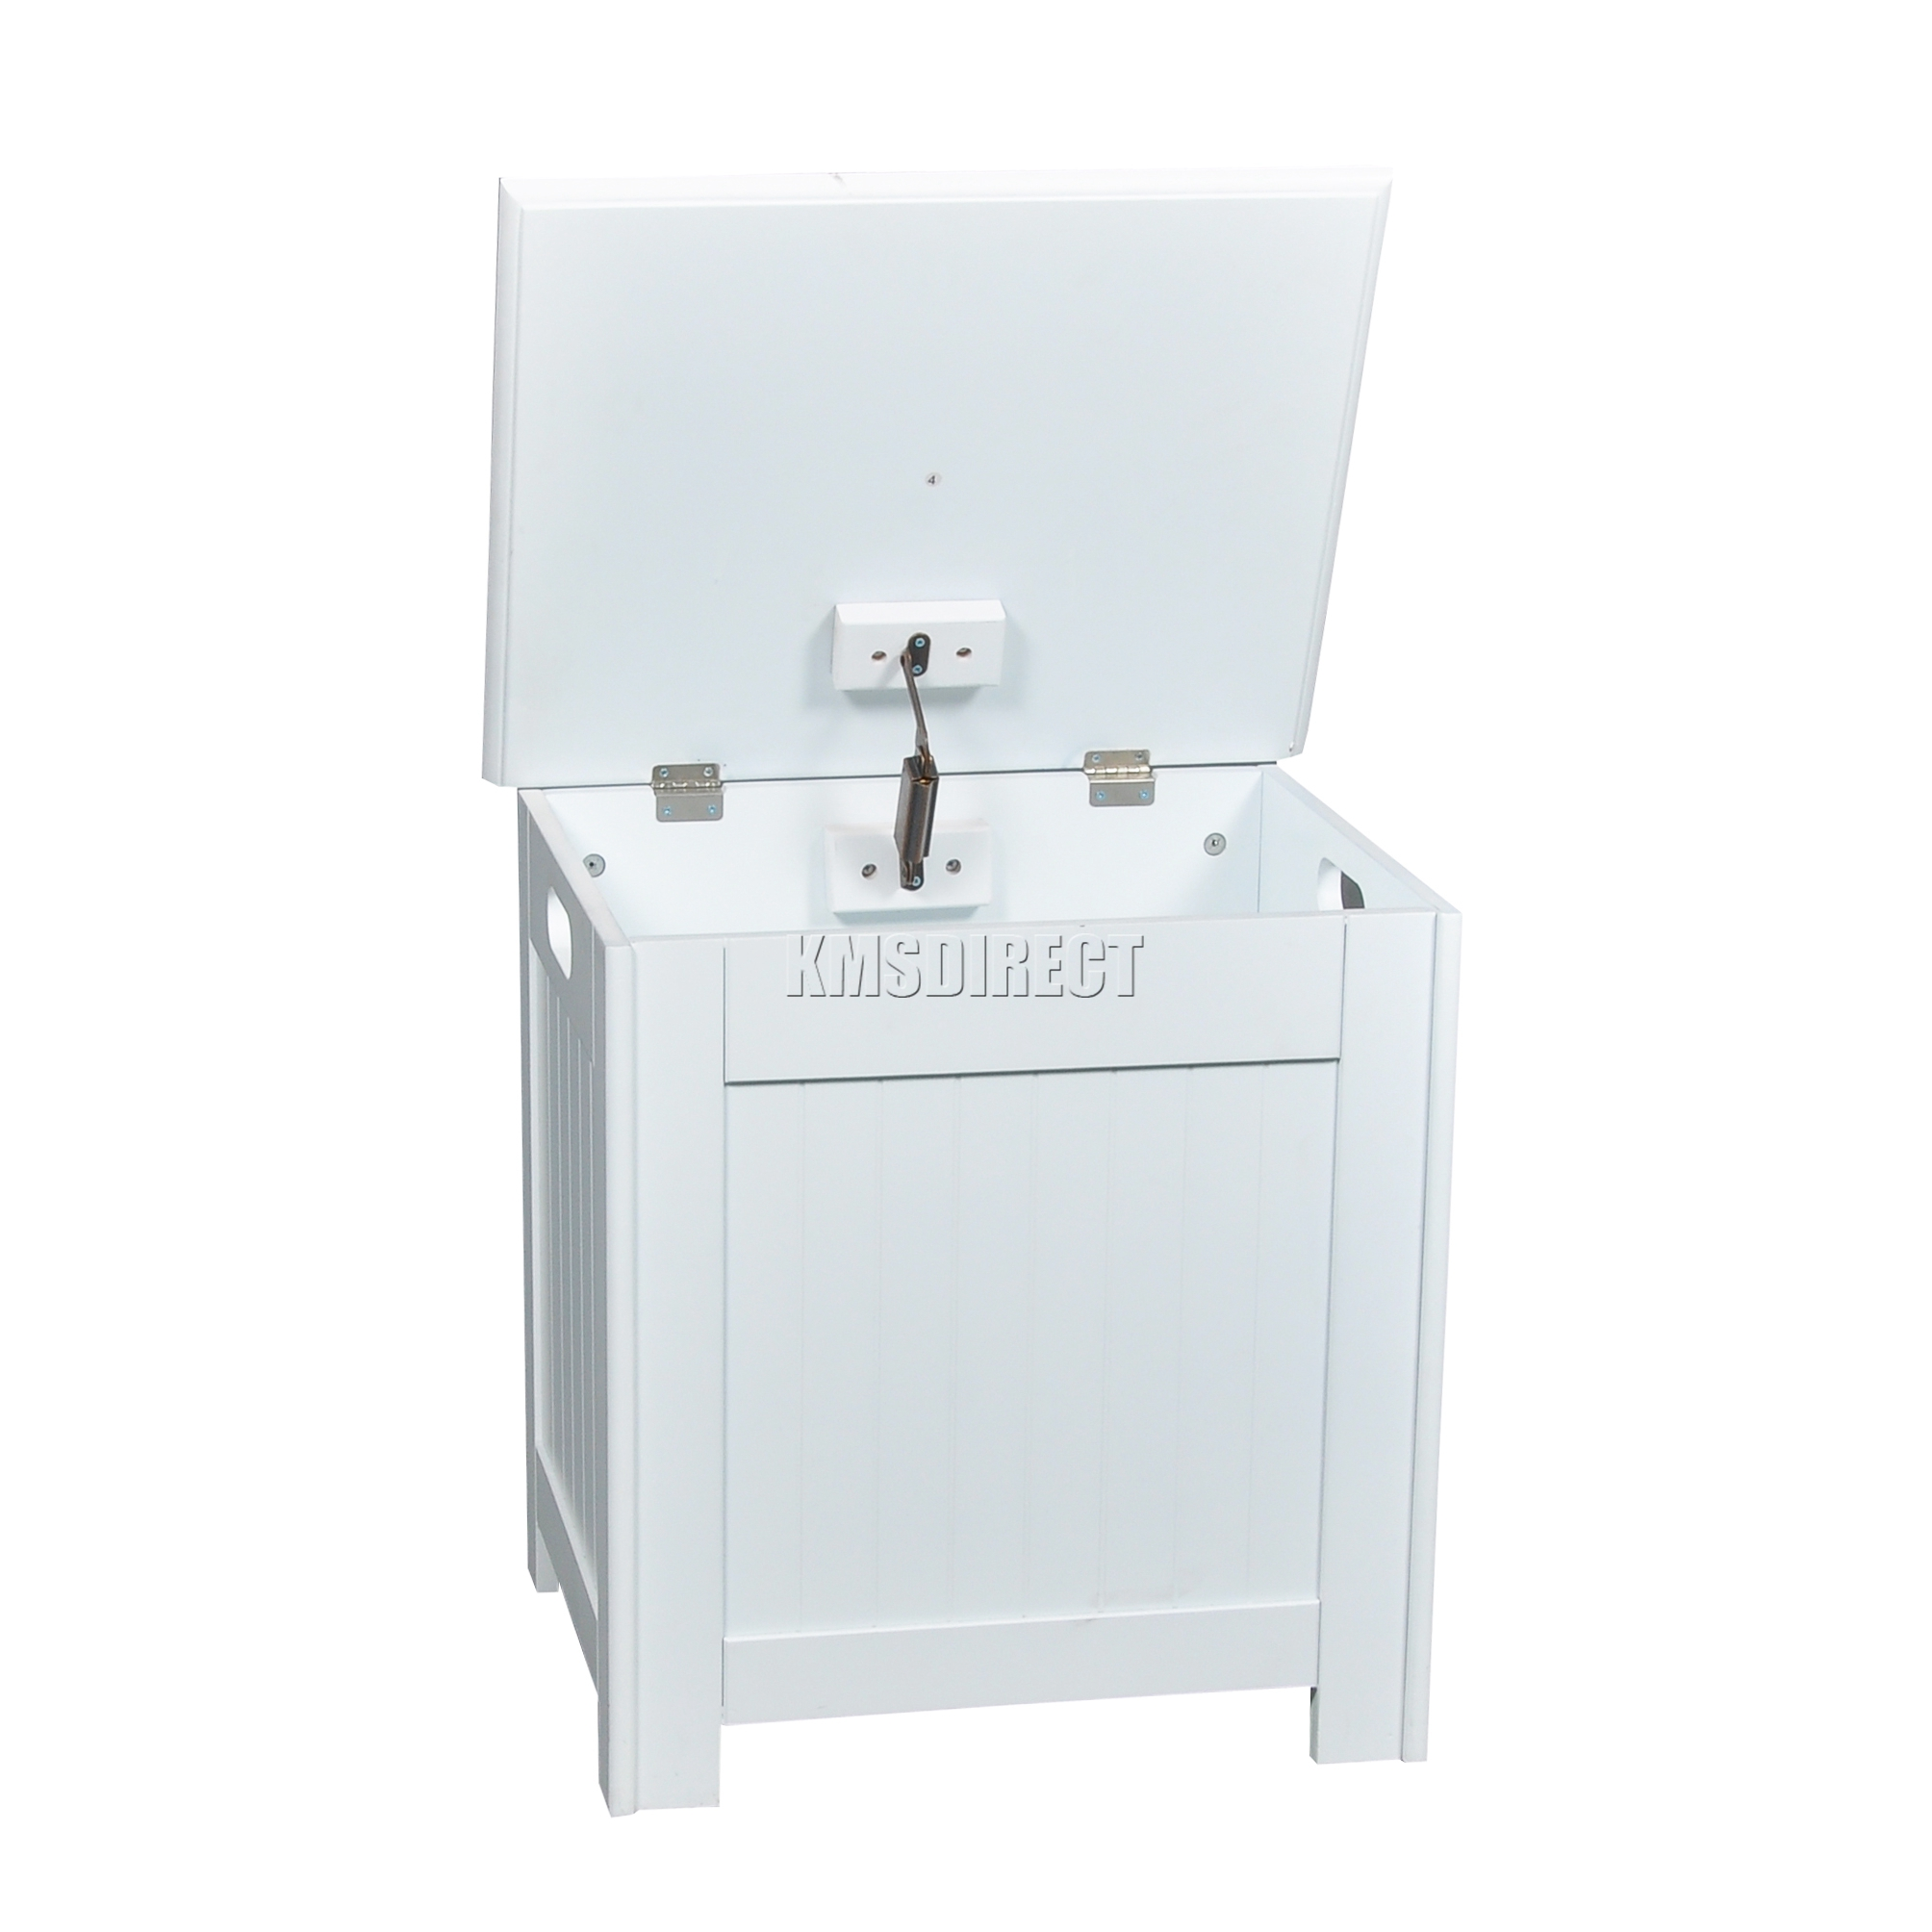 details about foxhunter bathroom laundry storage organizer cabinet